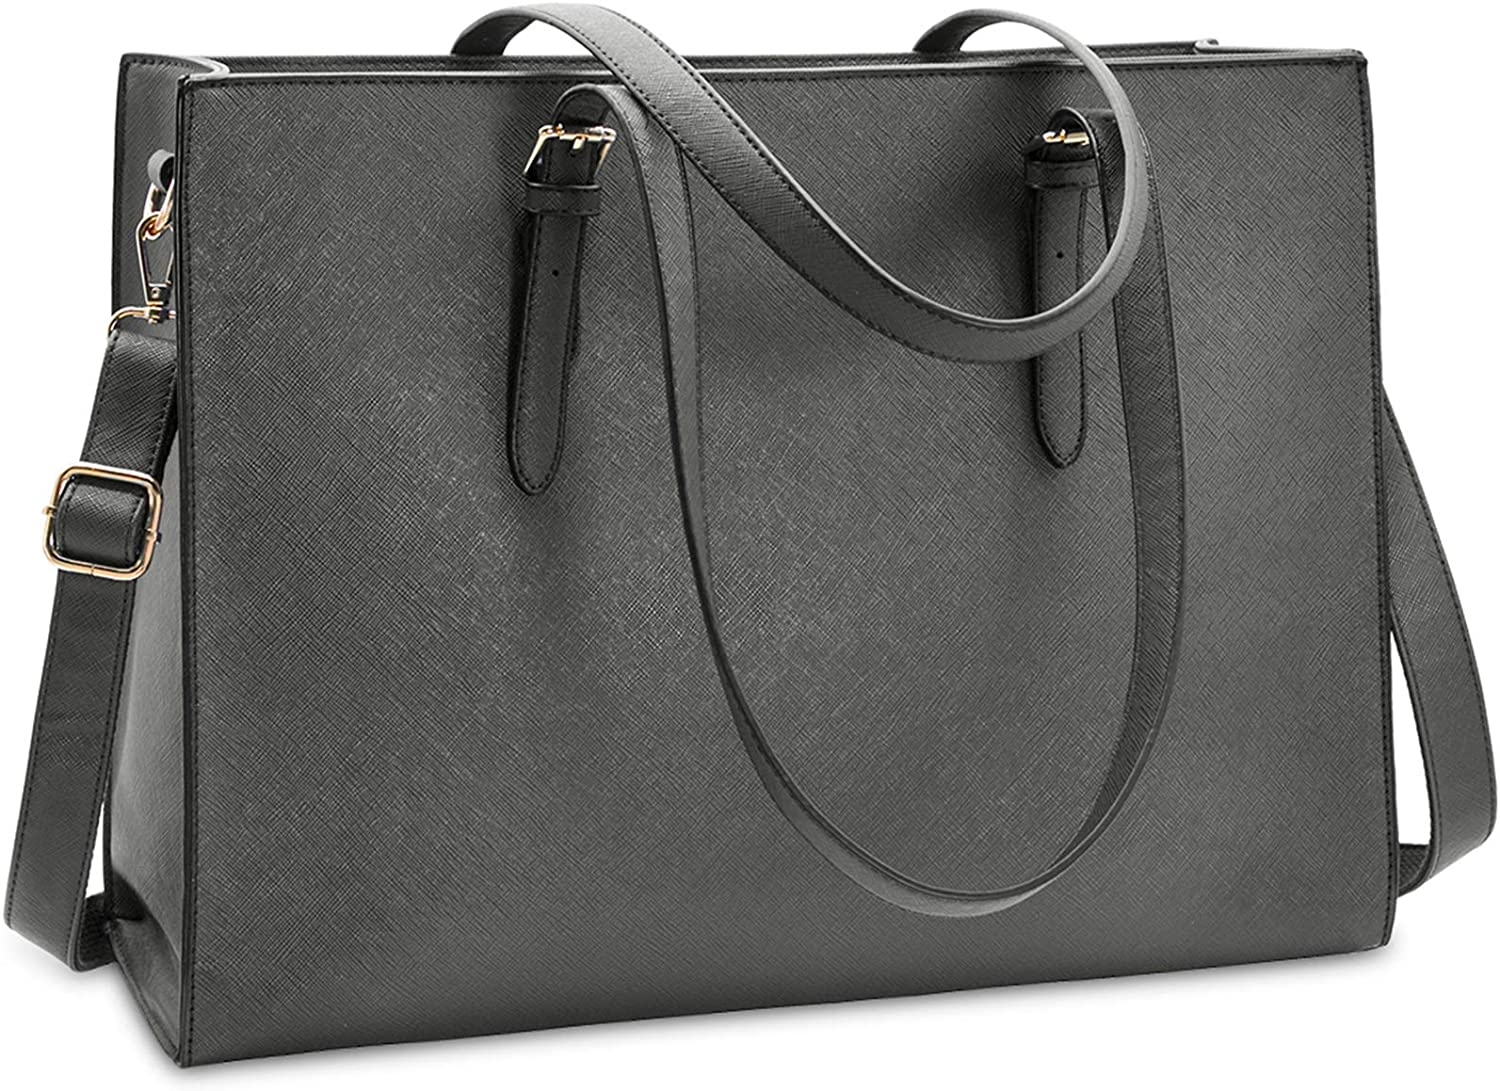 Laptop Bag for Women Waterproof Lightweight Leather 15.6 Inch Computer Tote Bag Business Office Briefcase Large Capacity Handbag Shoulder Bag Professional Office Work Bag Grey